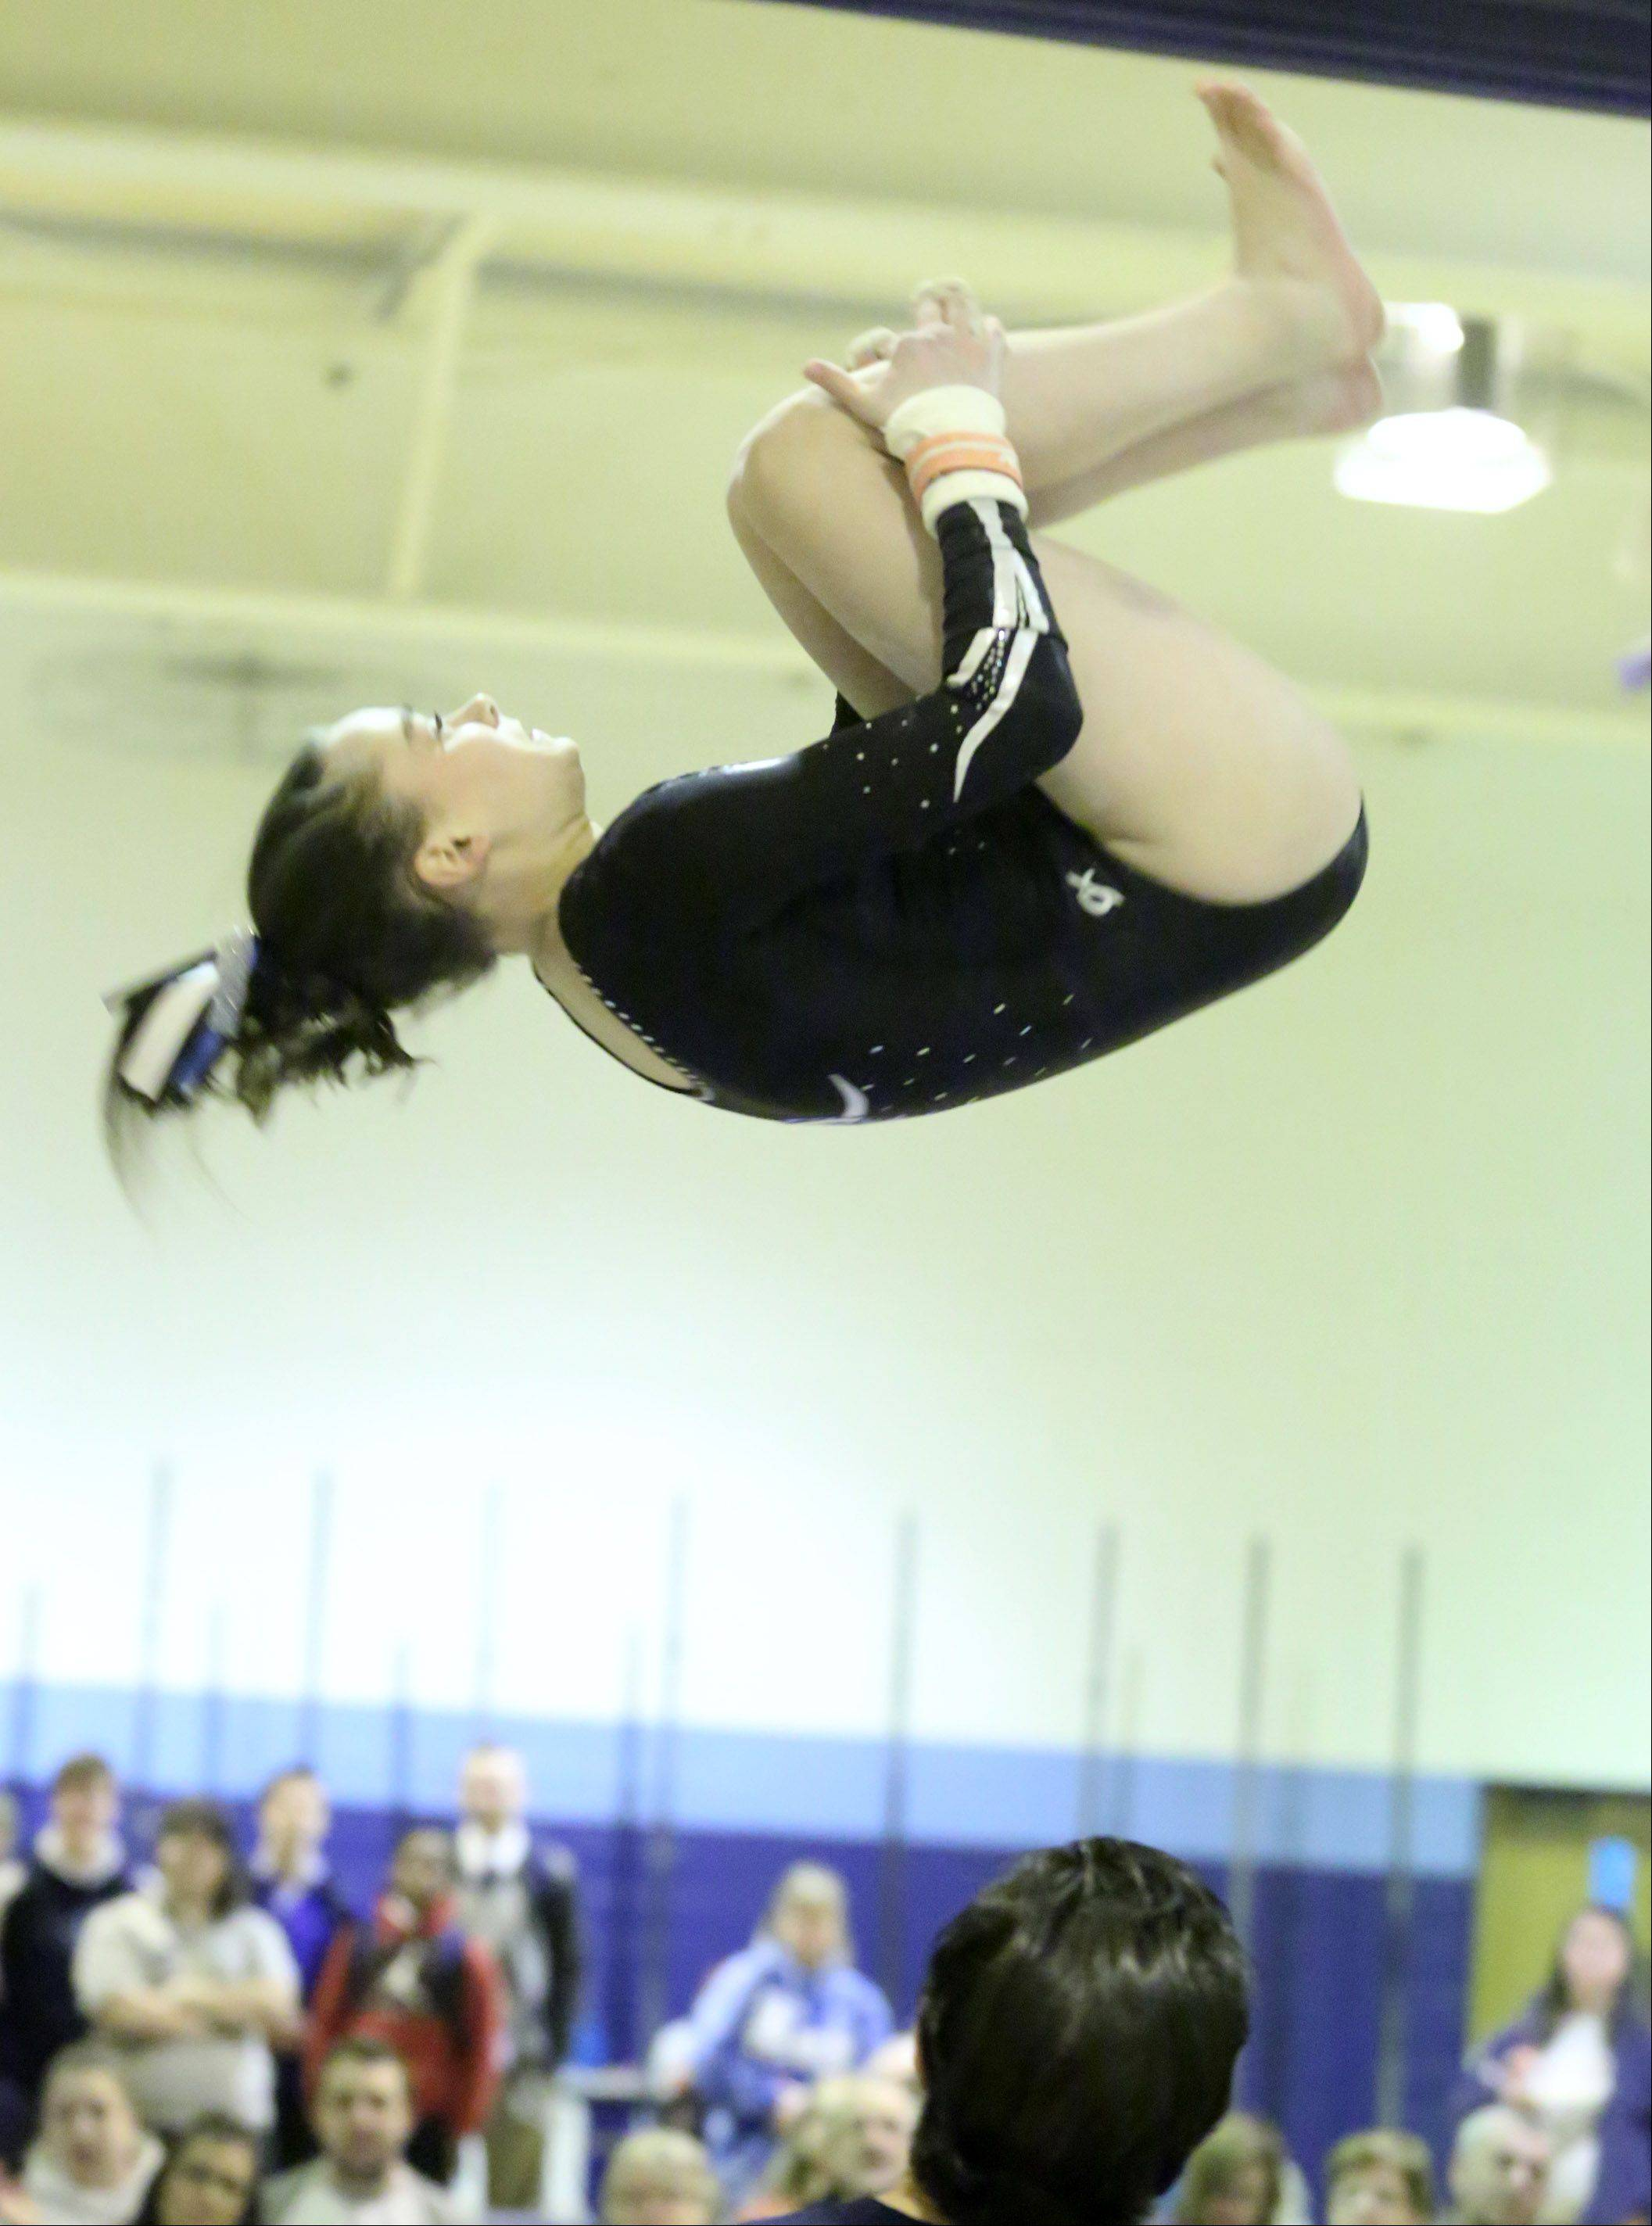 Prospect's Megan Donner dismounts from the uneven bars at Prospect on Saturday.